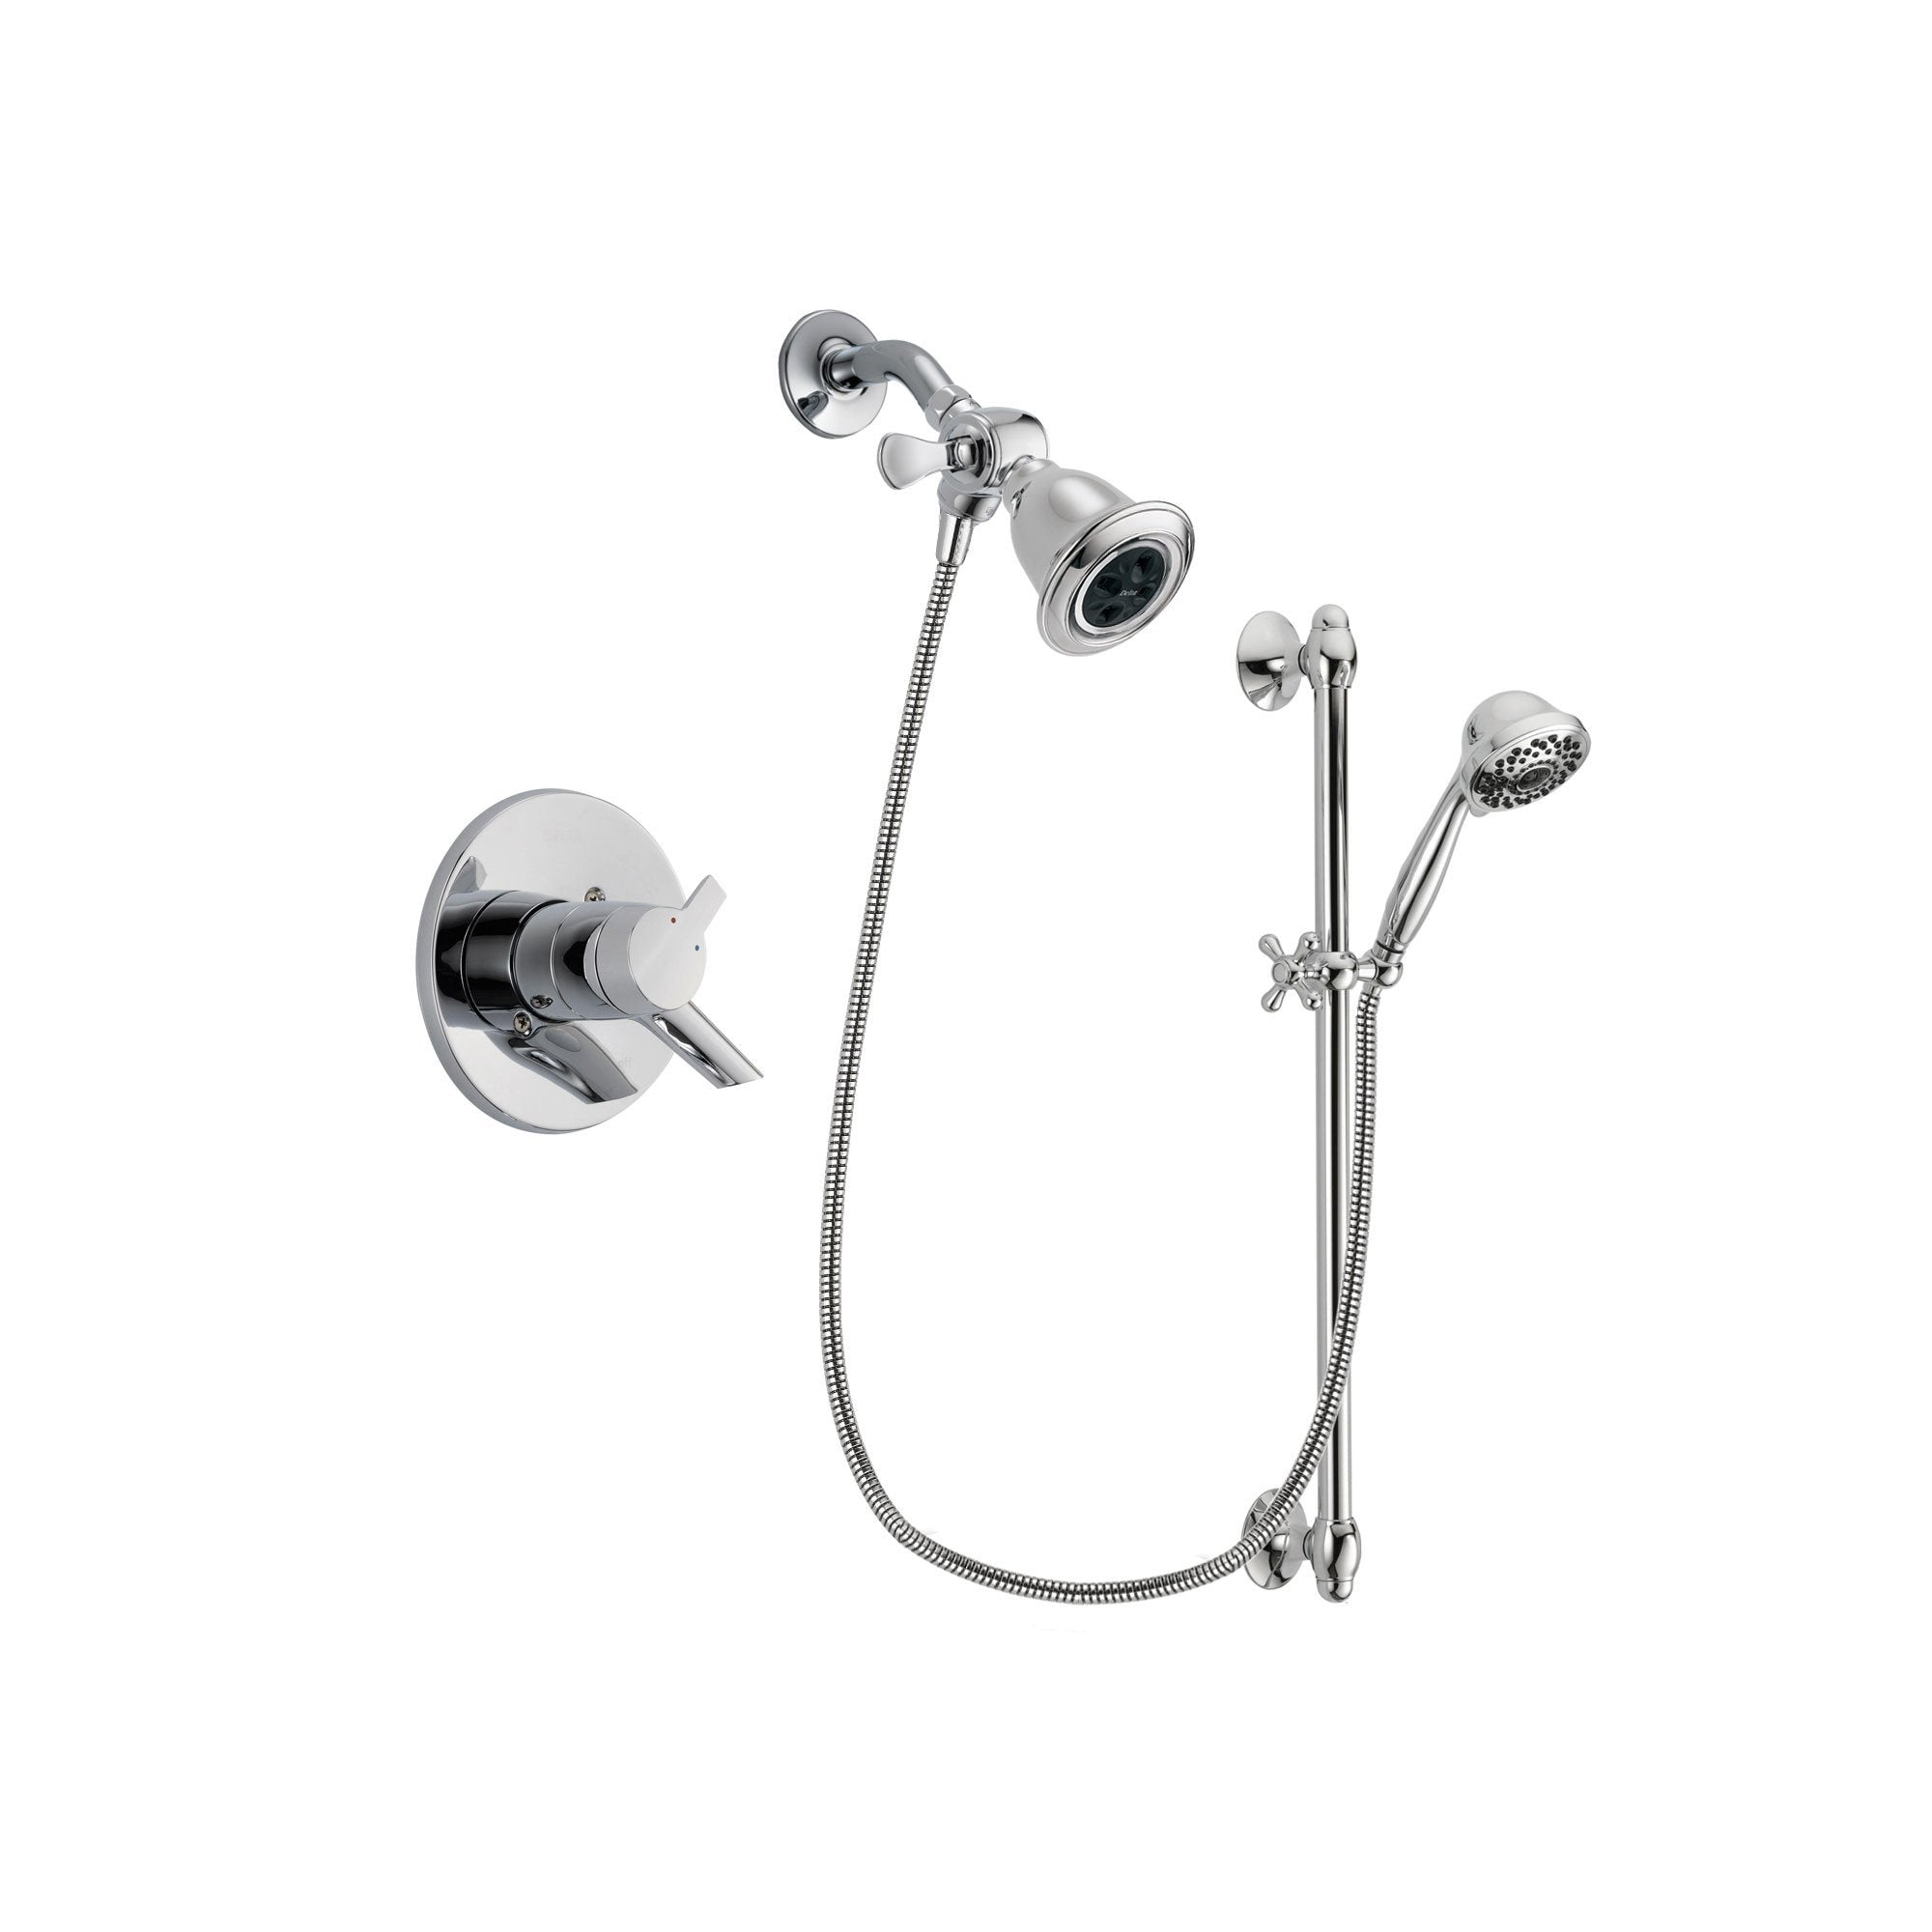 Delta Compel Chrome Shower Faucet System w/ Shower Head and Hand Shower DSP0620V